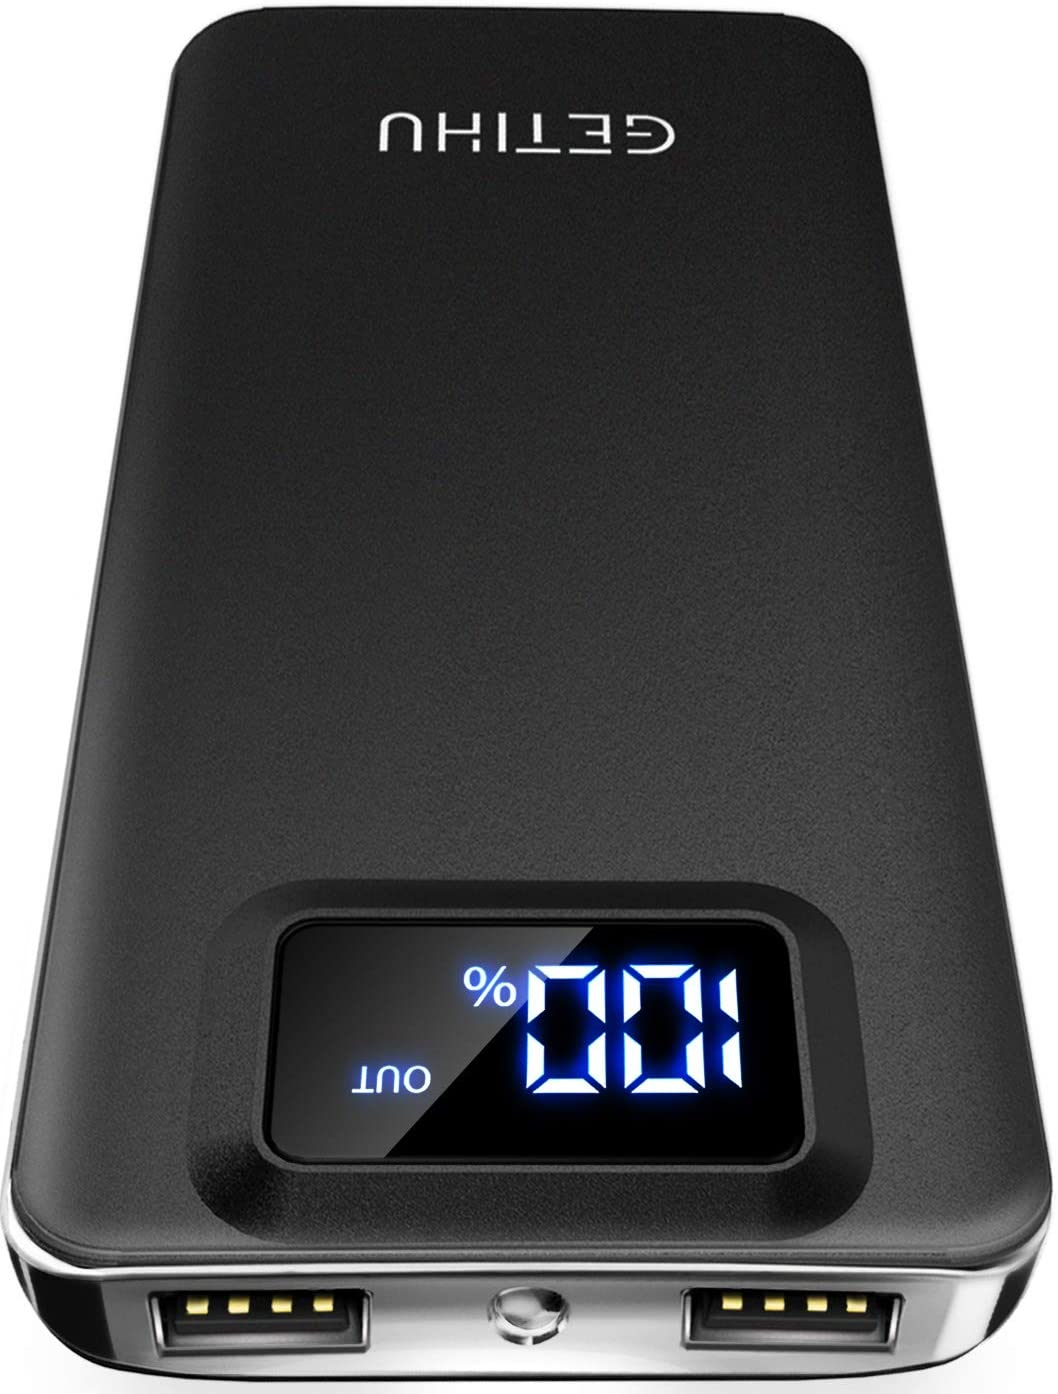 GETIHU Portable Charger, LED Display 10000mAh Power Bank, 4.8A 2 USB Ports High-Speed Battery Backup with Flashlight, Compatible with iPhone Xs X 8 7 6S Plus Samsung Galaxy Note 9 S9 iPad Tablet Etc